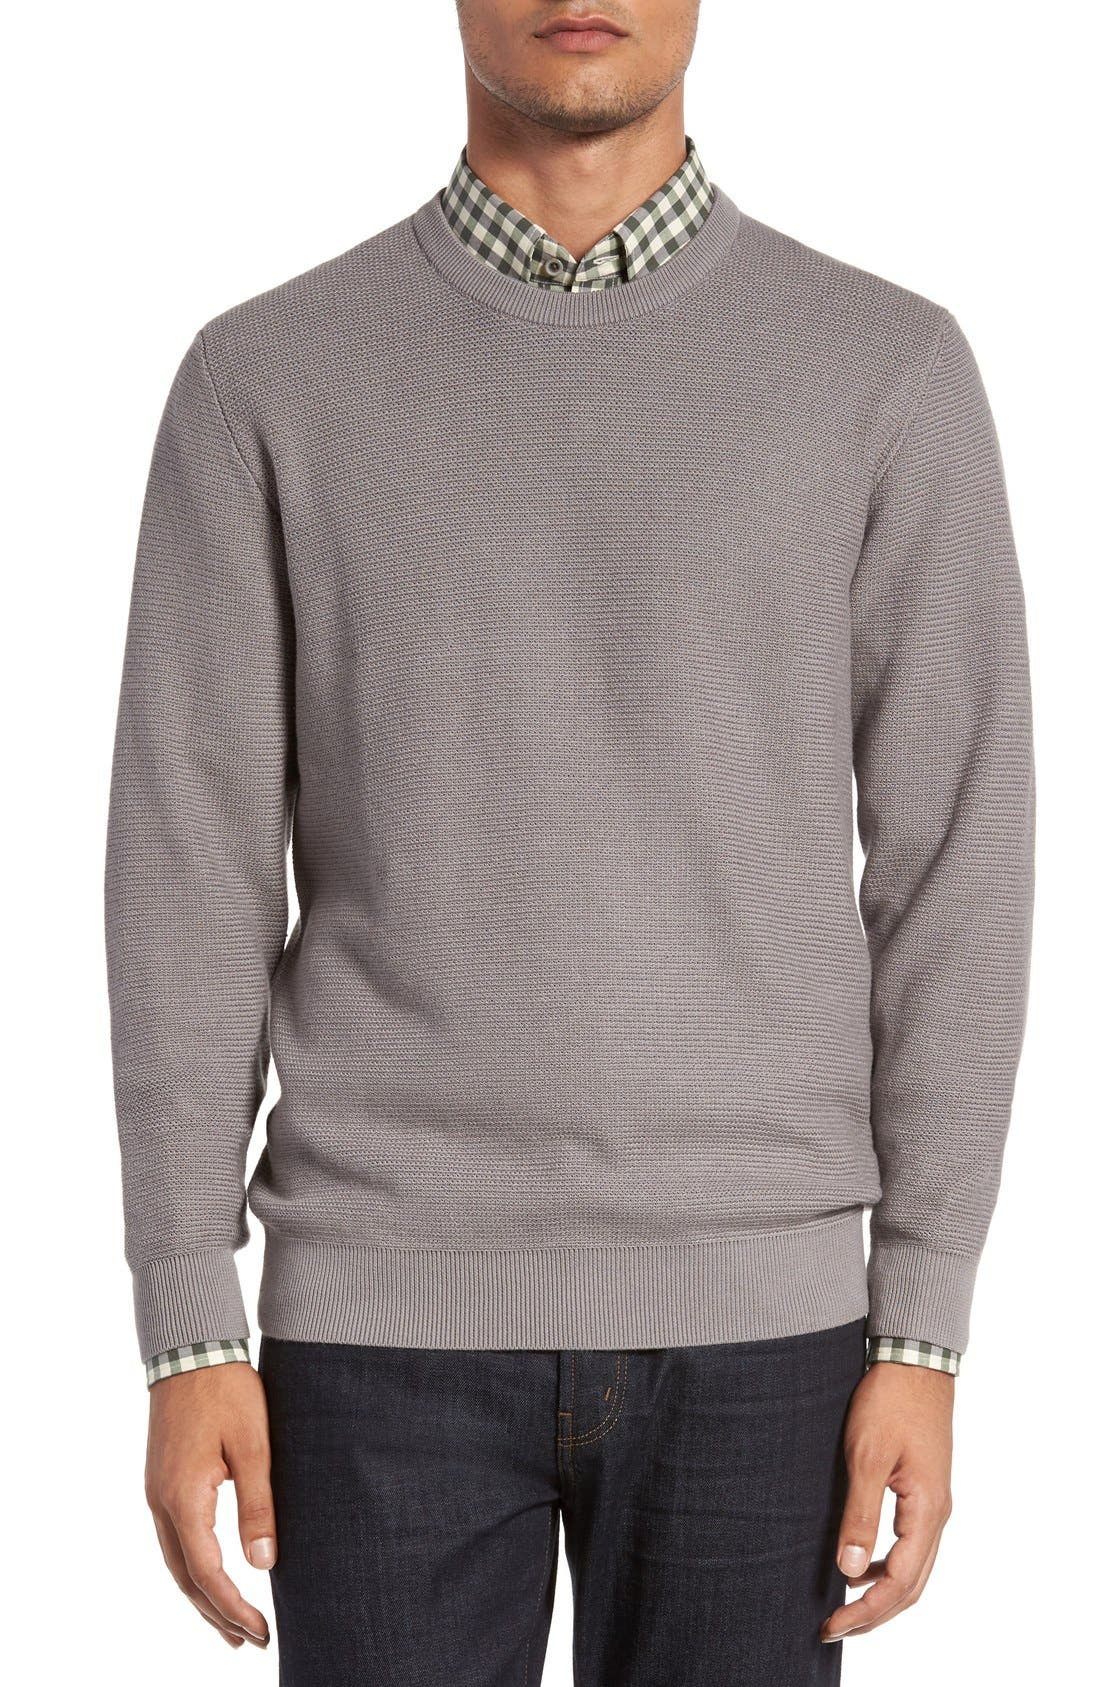 Cutter & Buck 'Benson' Crewneck Sweater